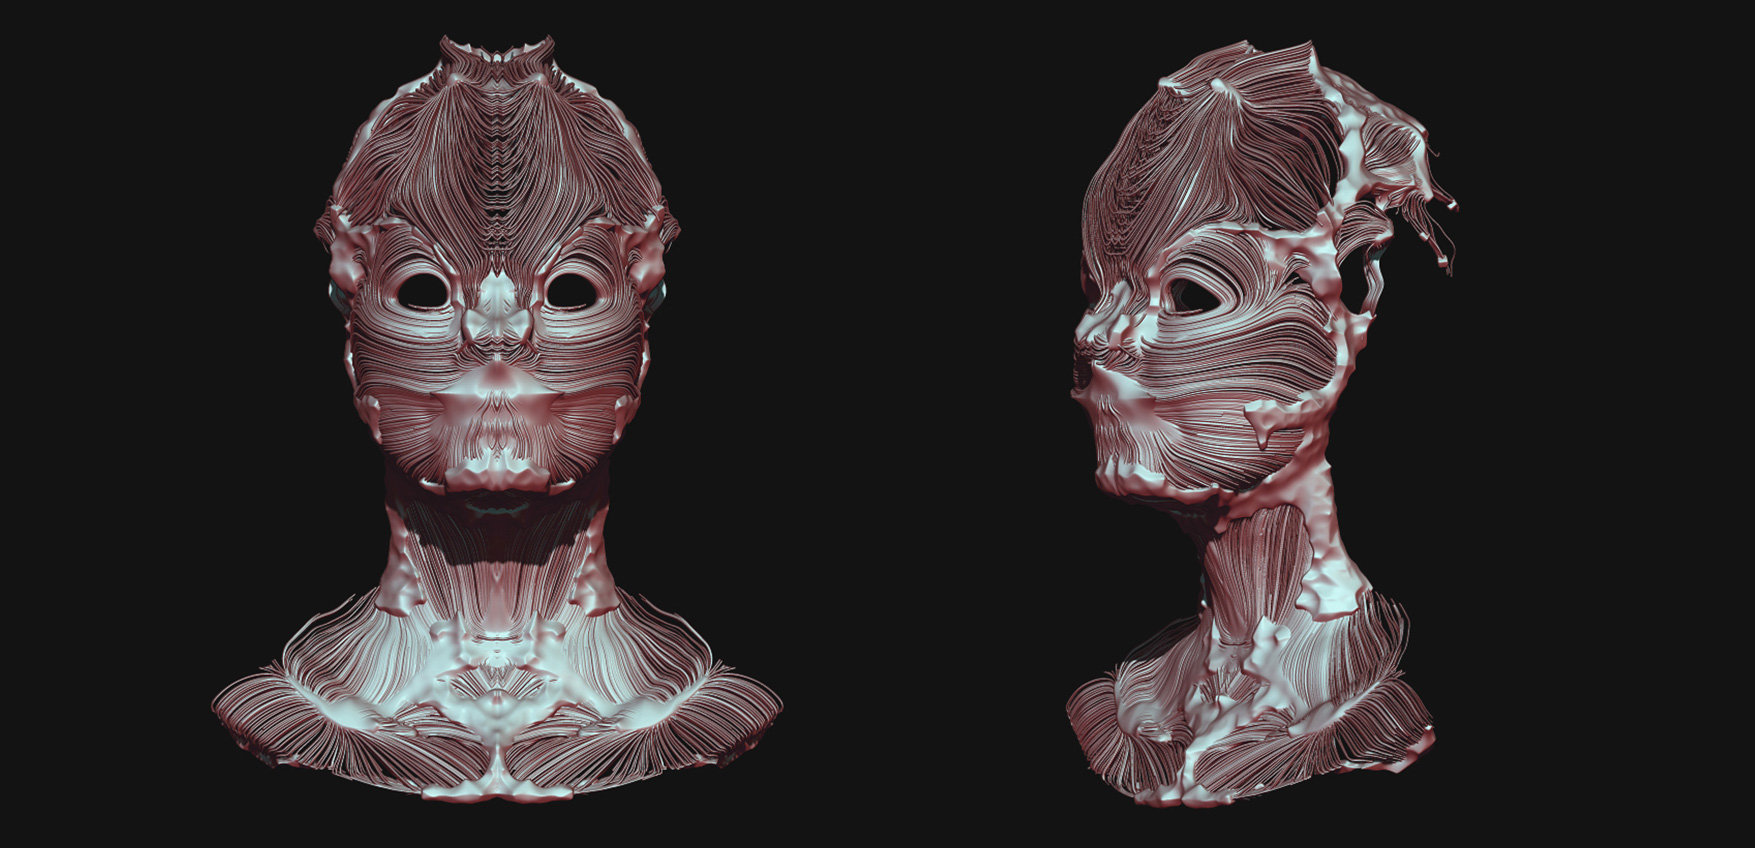 3D rendering of masks in muscle fiber